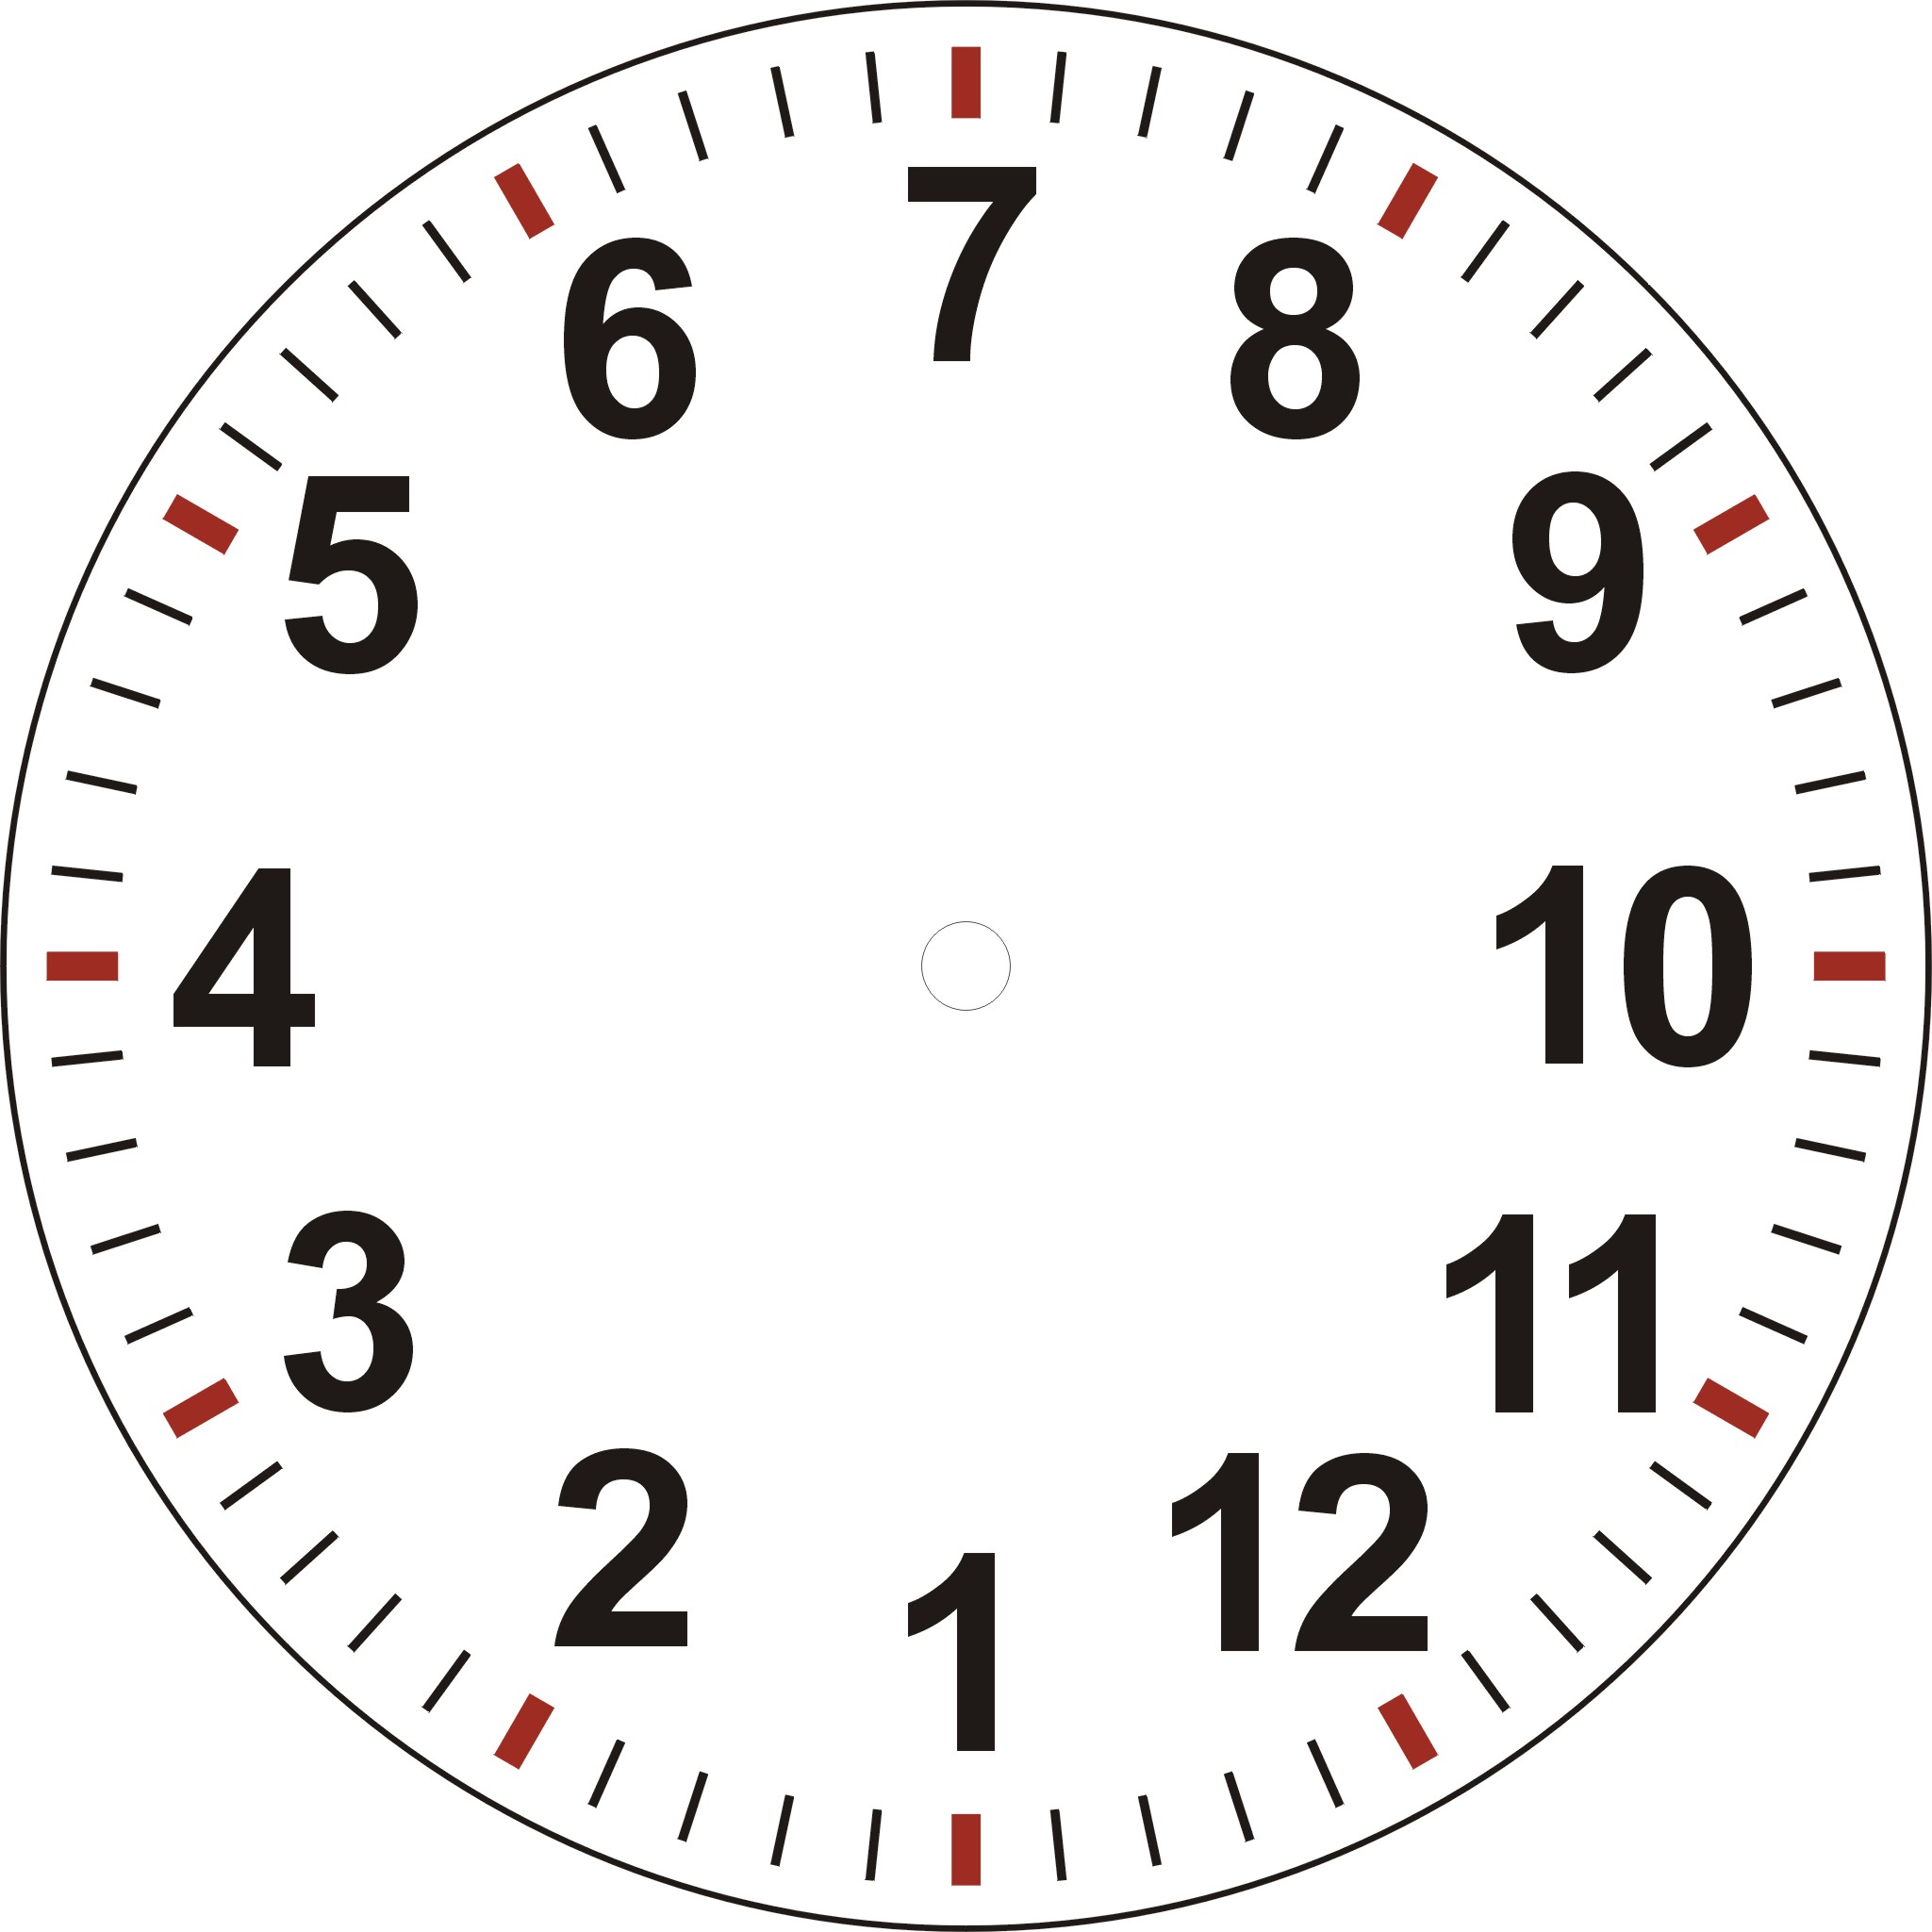 Make Your Own Clock Faces – Clock Face Template